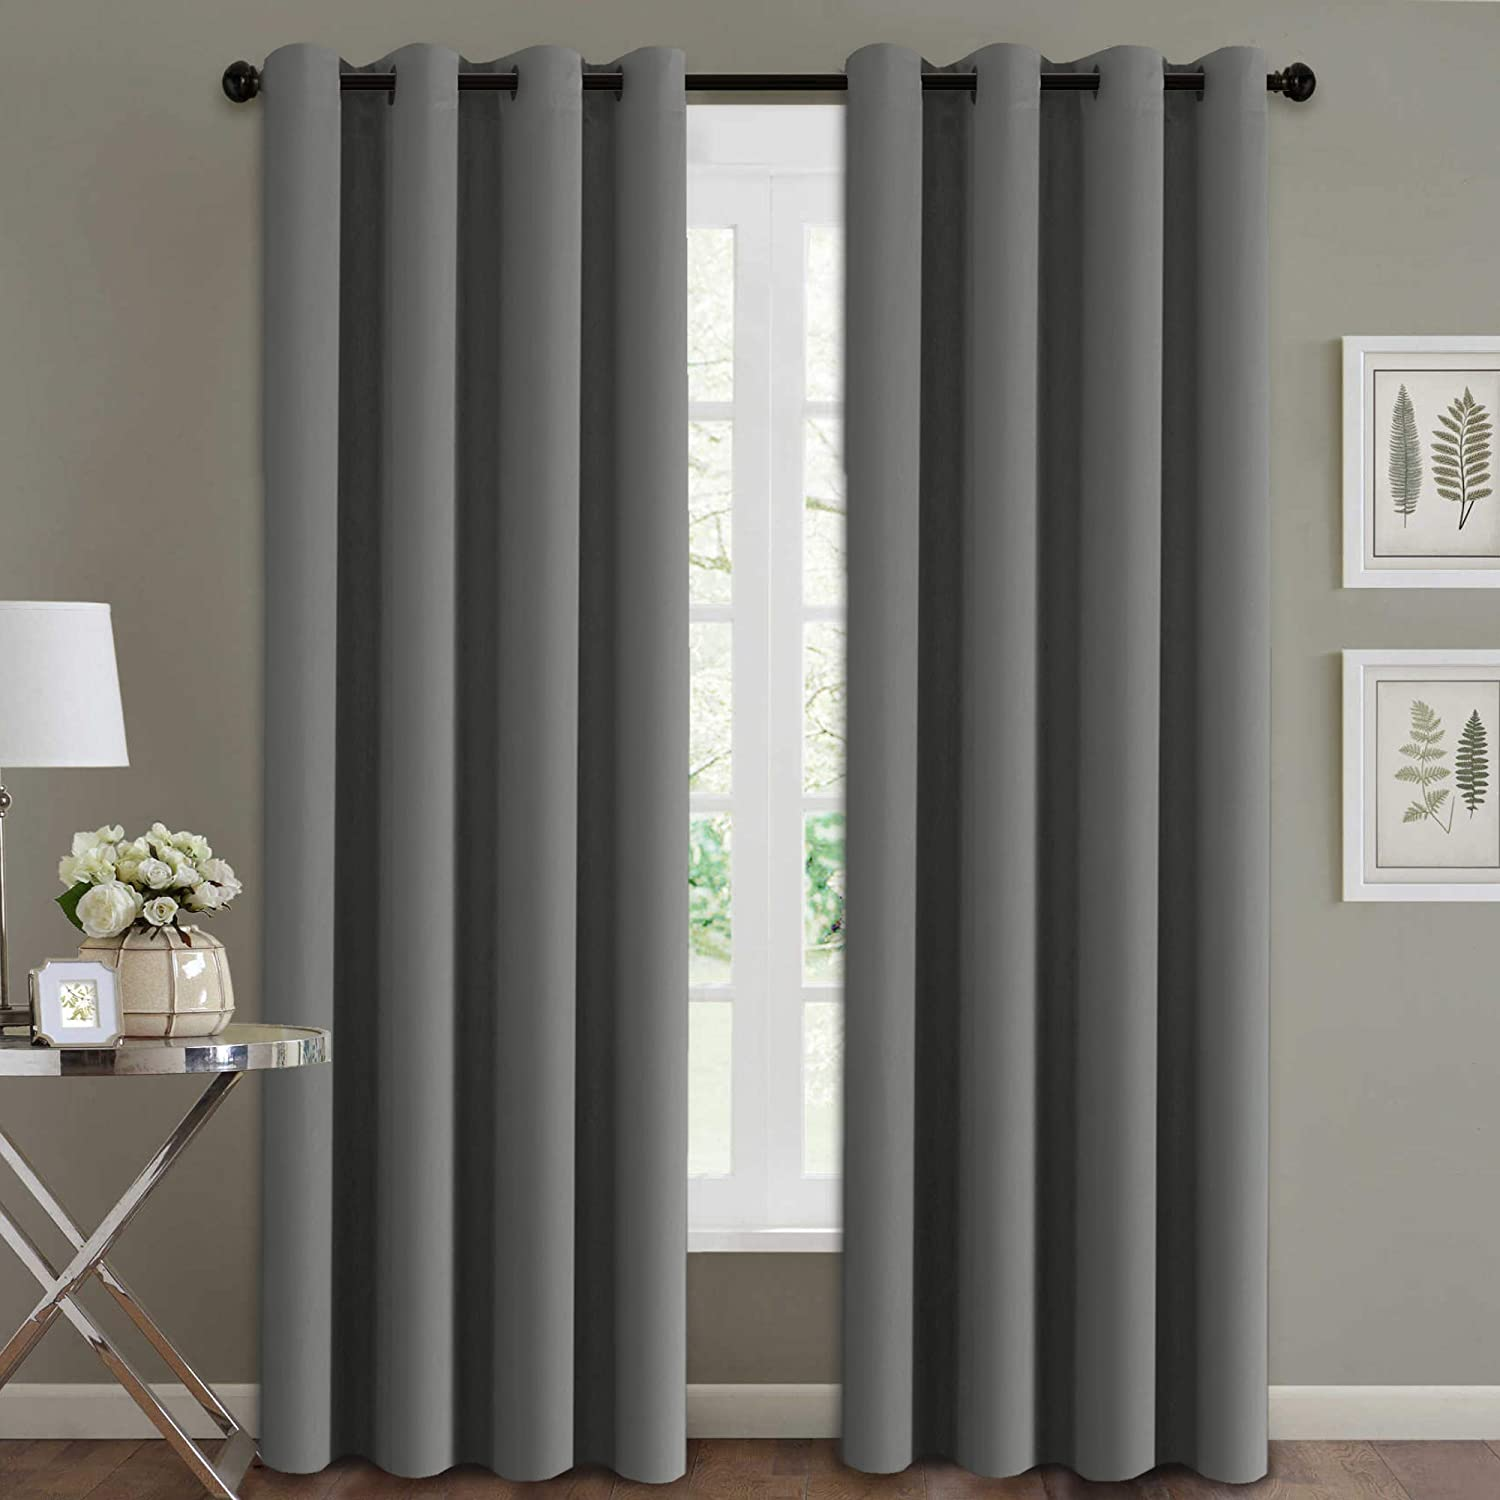 H.VERSAILTEX Blackout Thermal Insulated Room Darkening Winow Treatment Extra Long Curtains/Drapes, Grommet Panels (Set of 2, 52 by 108 - Inch, Grey)